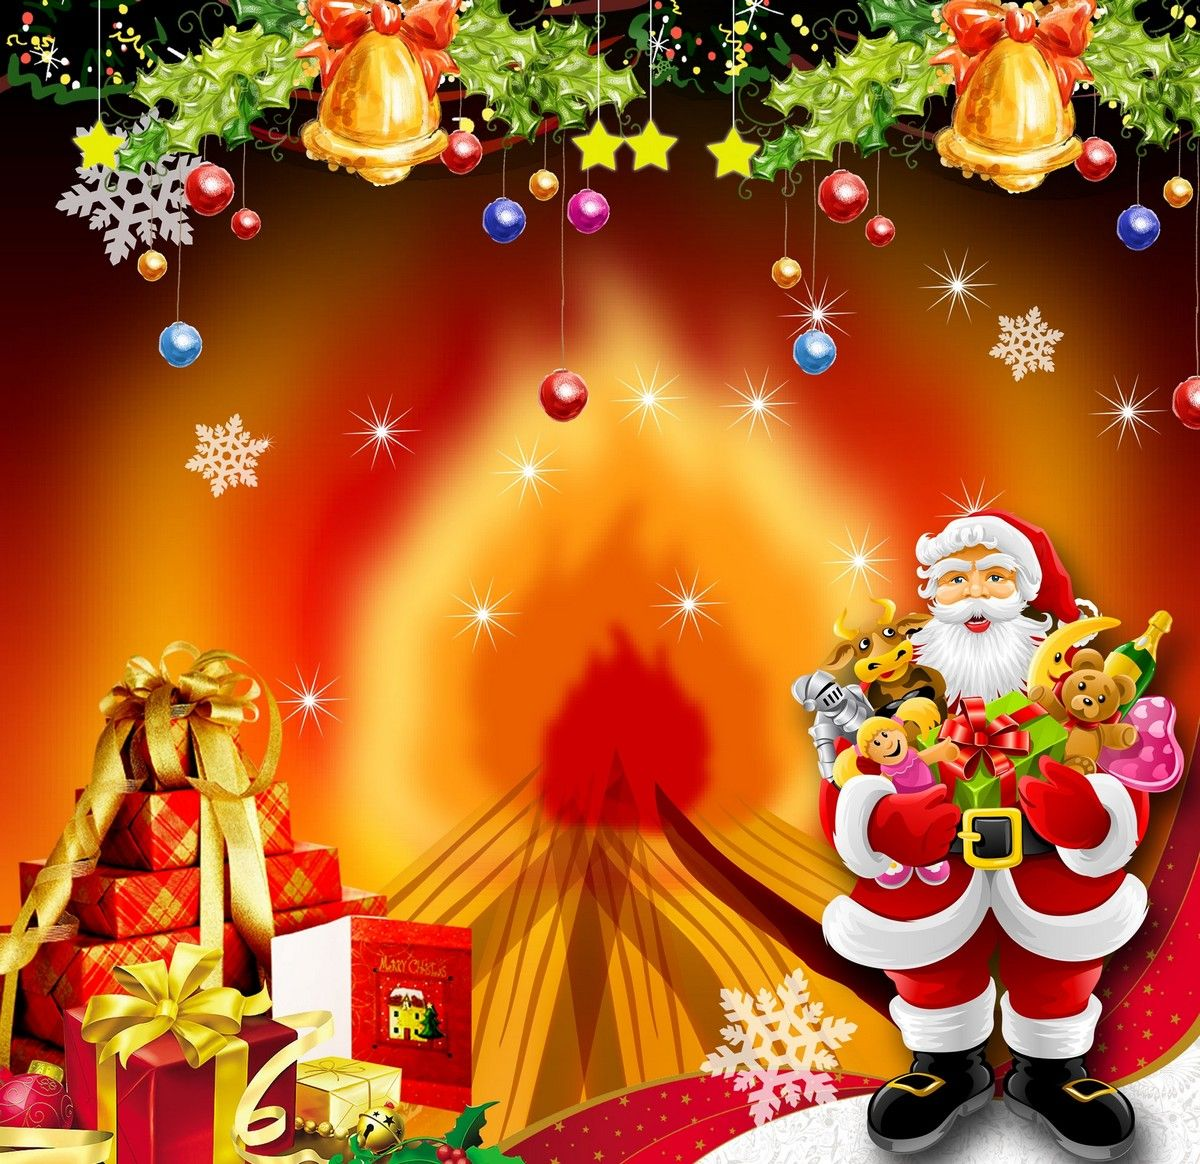 Merry Christmas Blessings Sms Messages 2015 Merry Christmas 2015